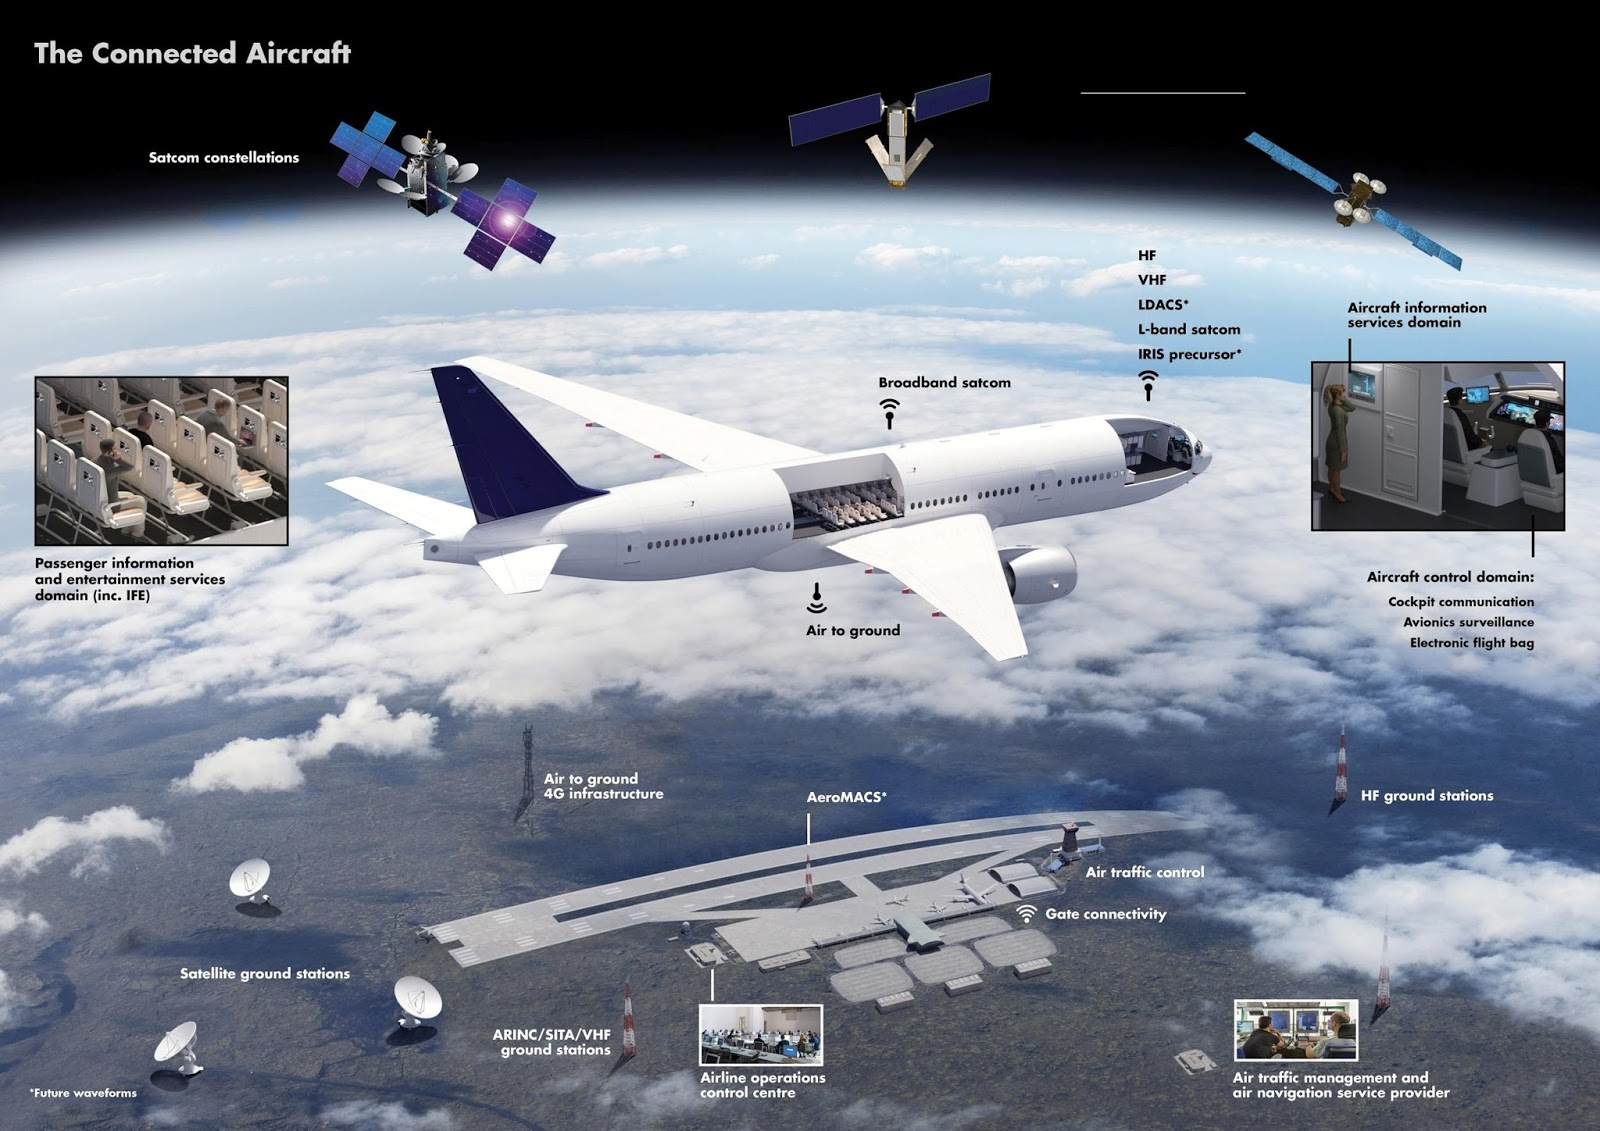 Electronic Note: The Aircraft Data Domains